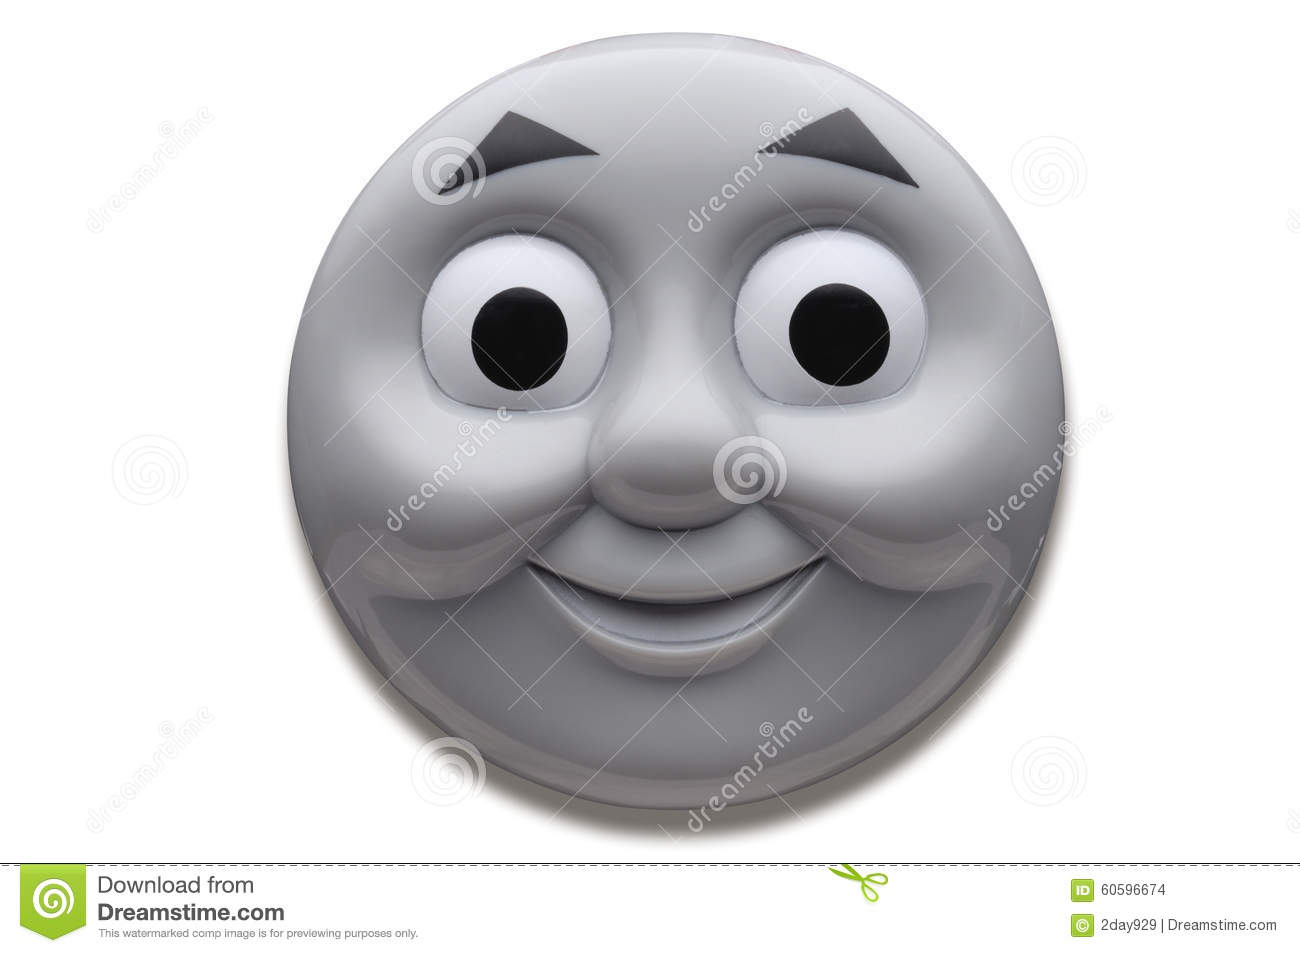 thomas the tank engine face template - thomas the train face images